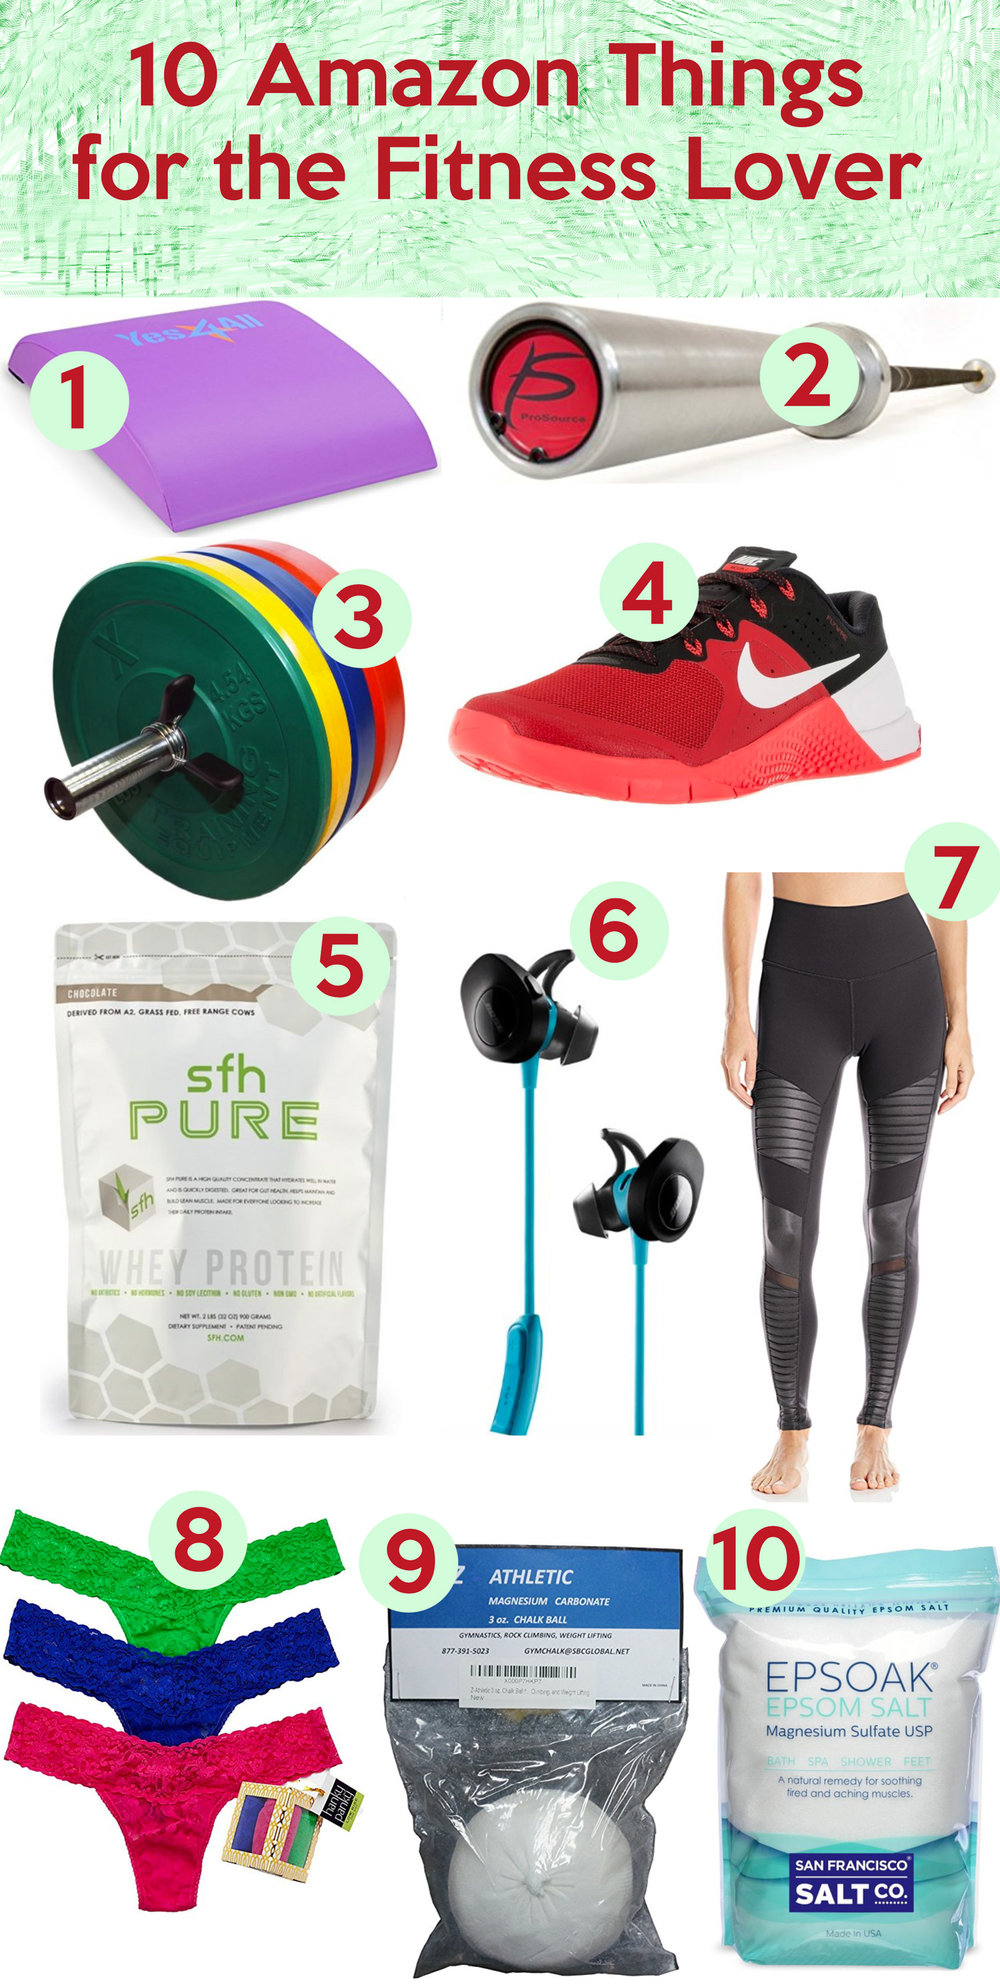 10 gifts on Amazon for the fitness lover